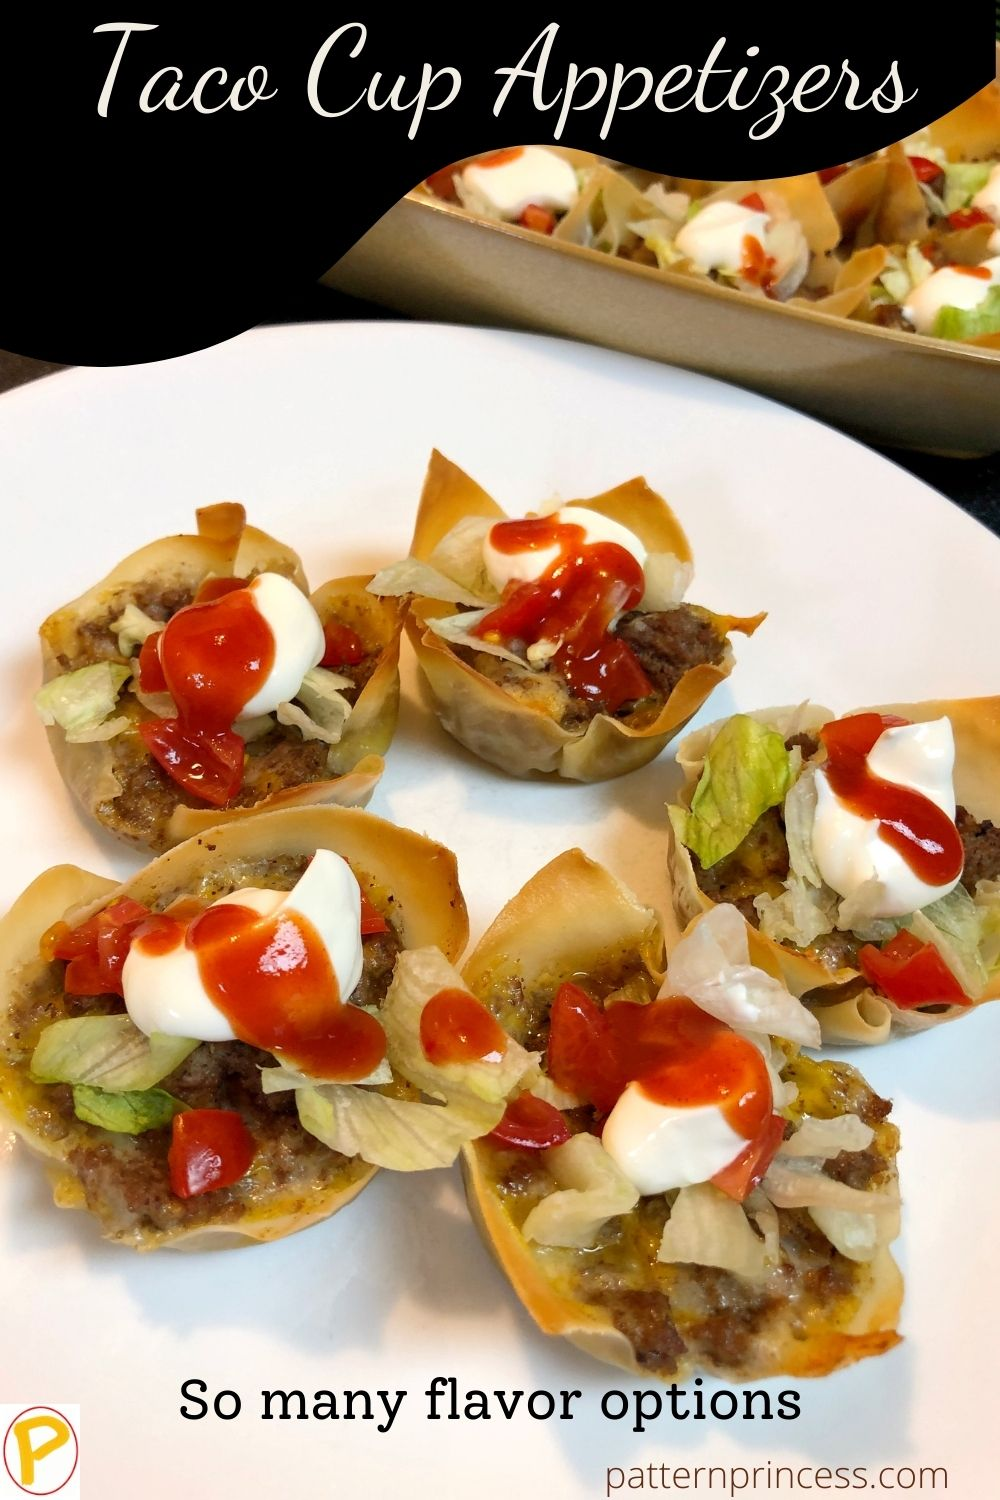 Taco Cup Appetizers